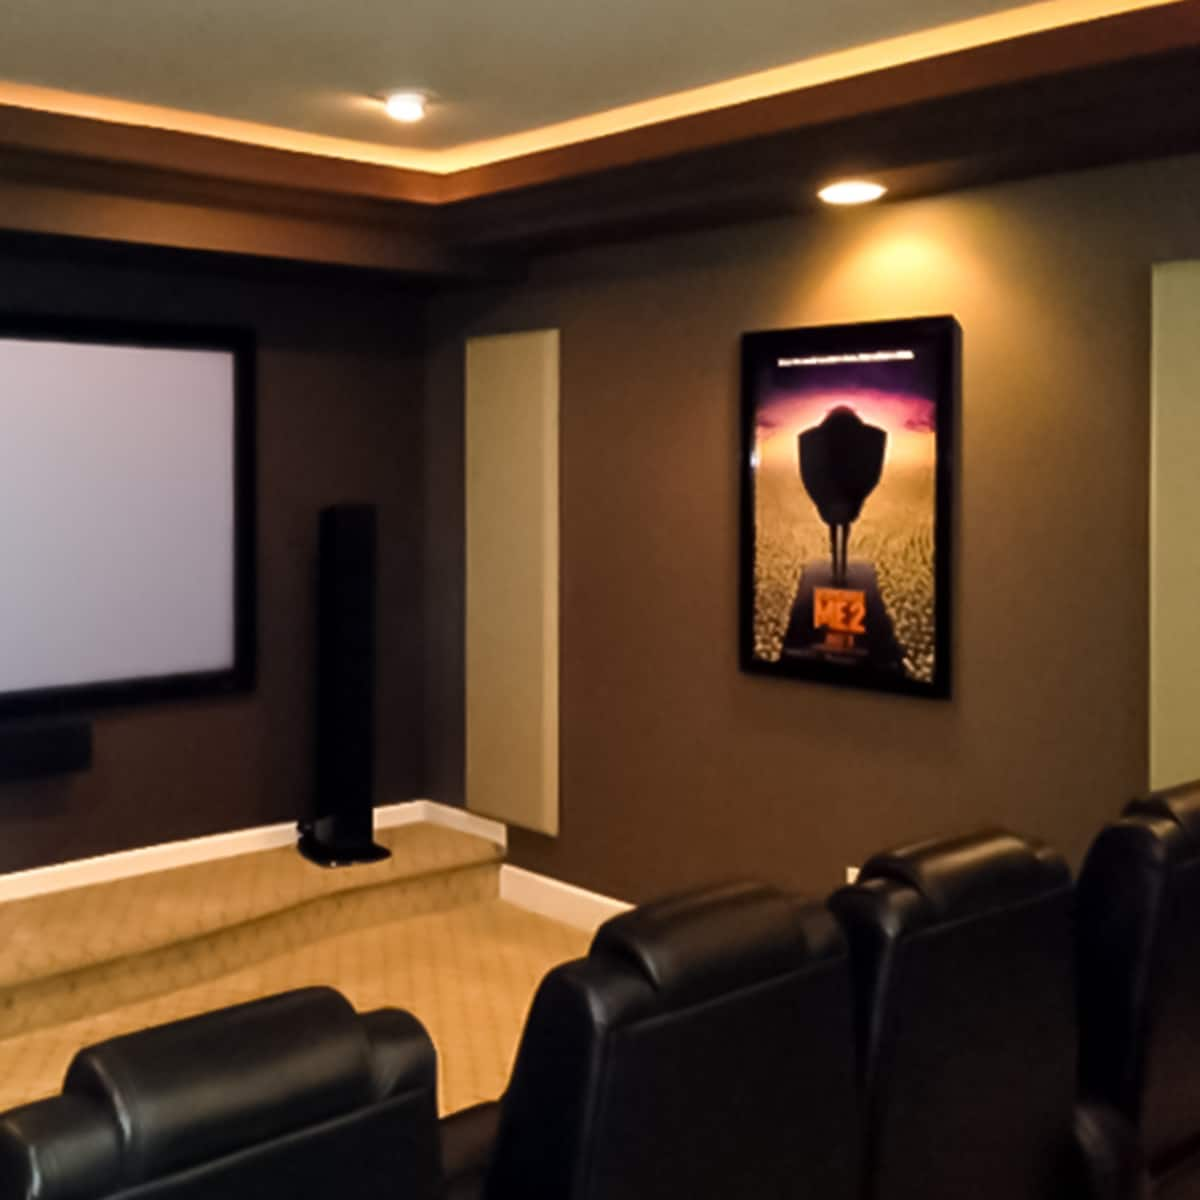 Home Entertainment Spaces: Jeff B.'s Home Theater